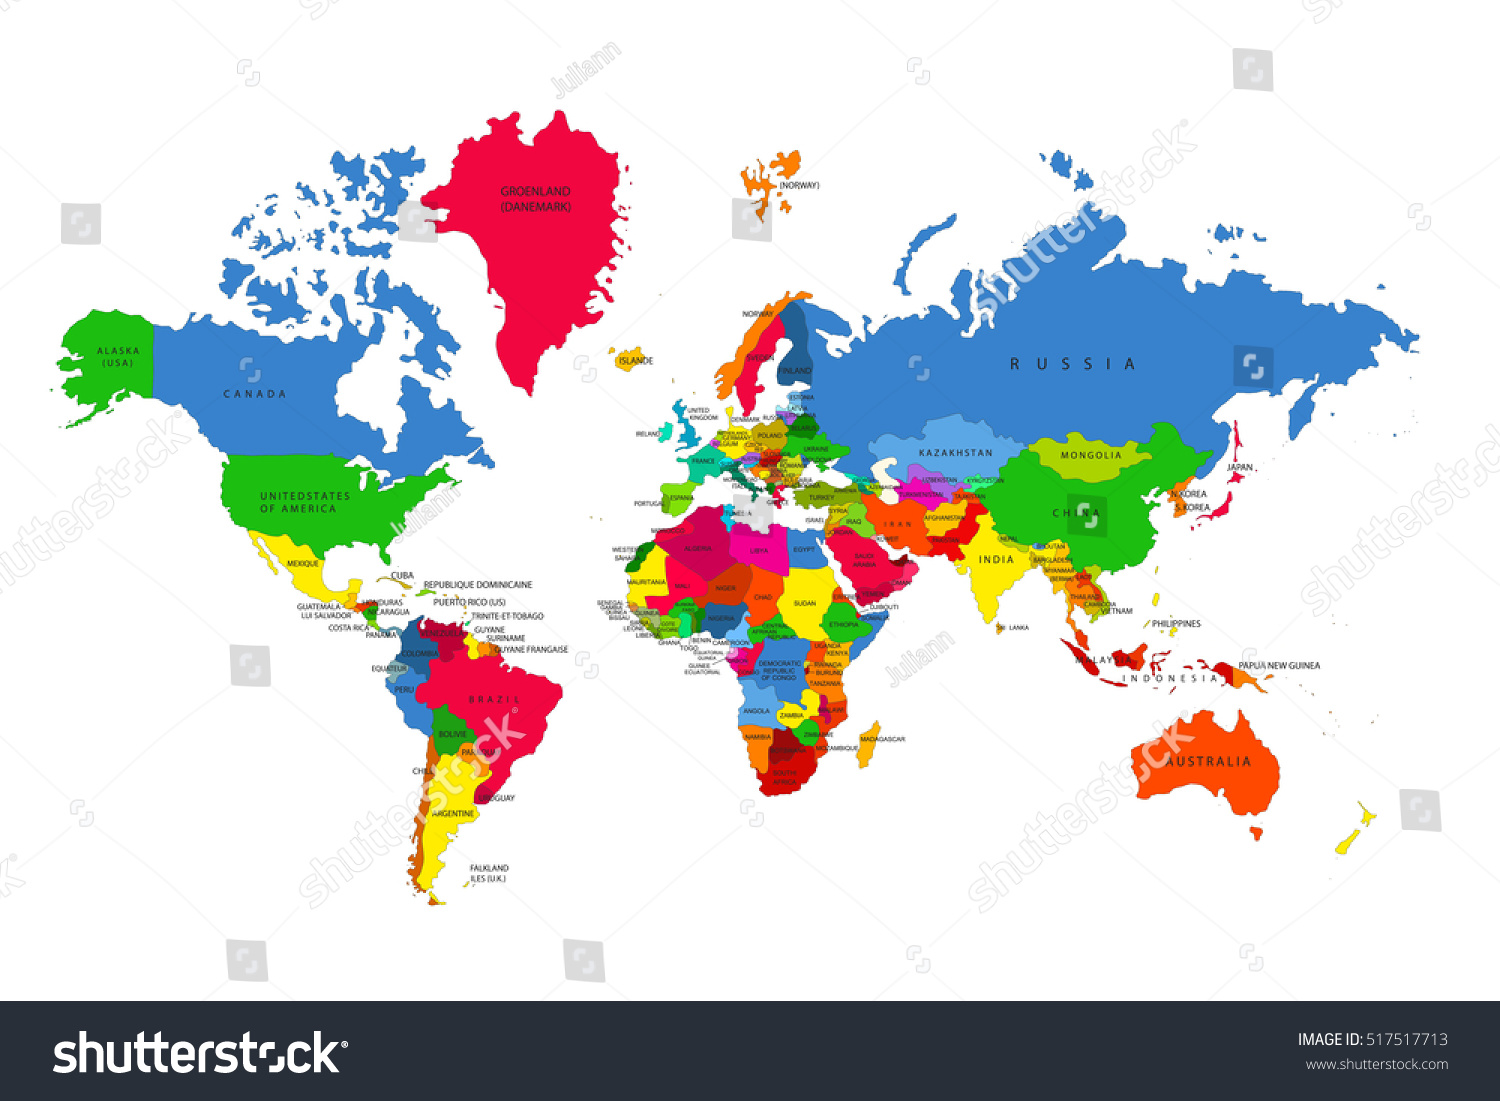 Political map world colorful world mapcountries stock vector political map of the world colorful world map countries vector illustration gumiabroncs Gallery